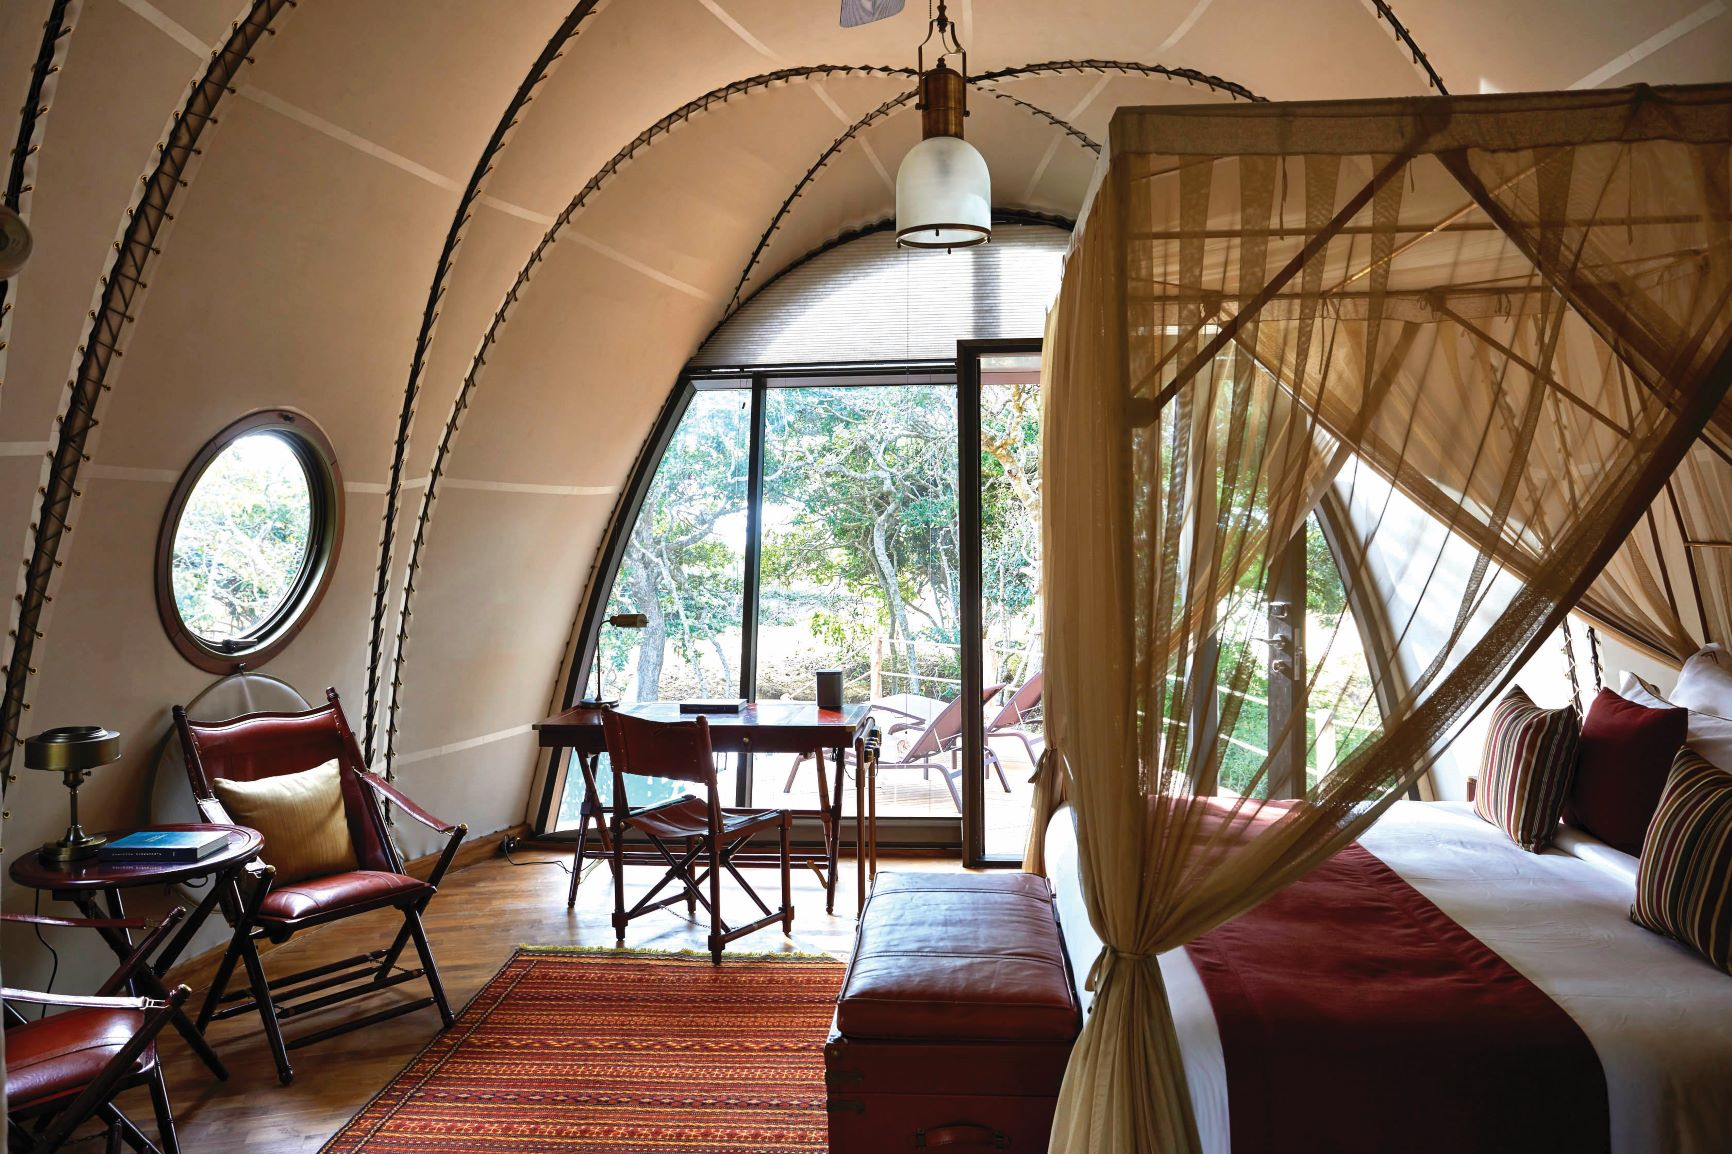 Wild Coast Tented Lodge, Sri Lanka